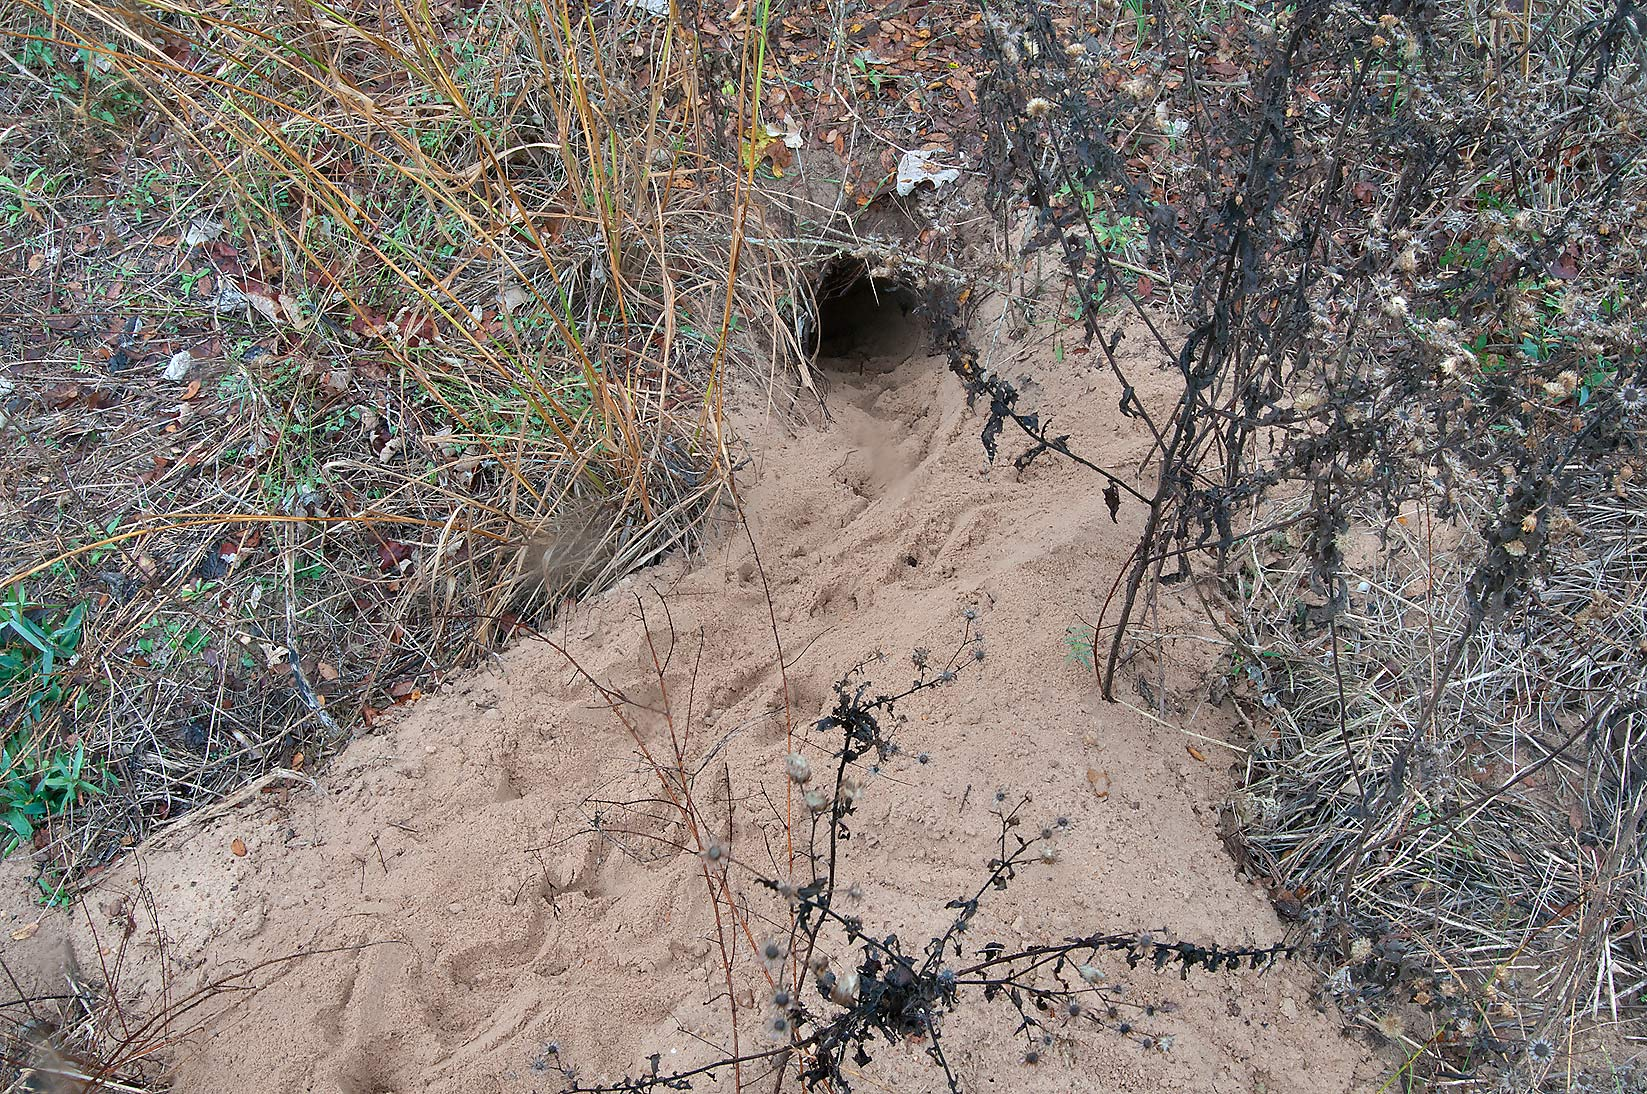 Animal's burrow with tracks of snakes in...State Historic Site. Washington, Texas